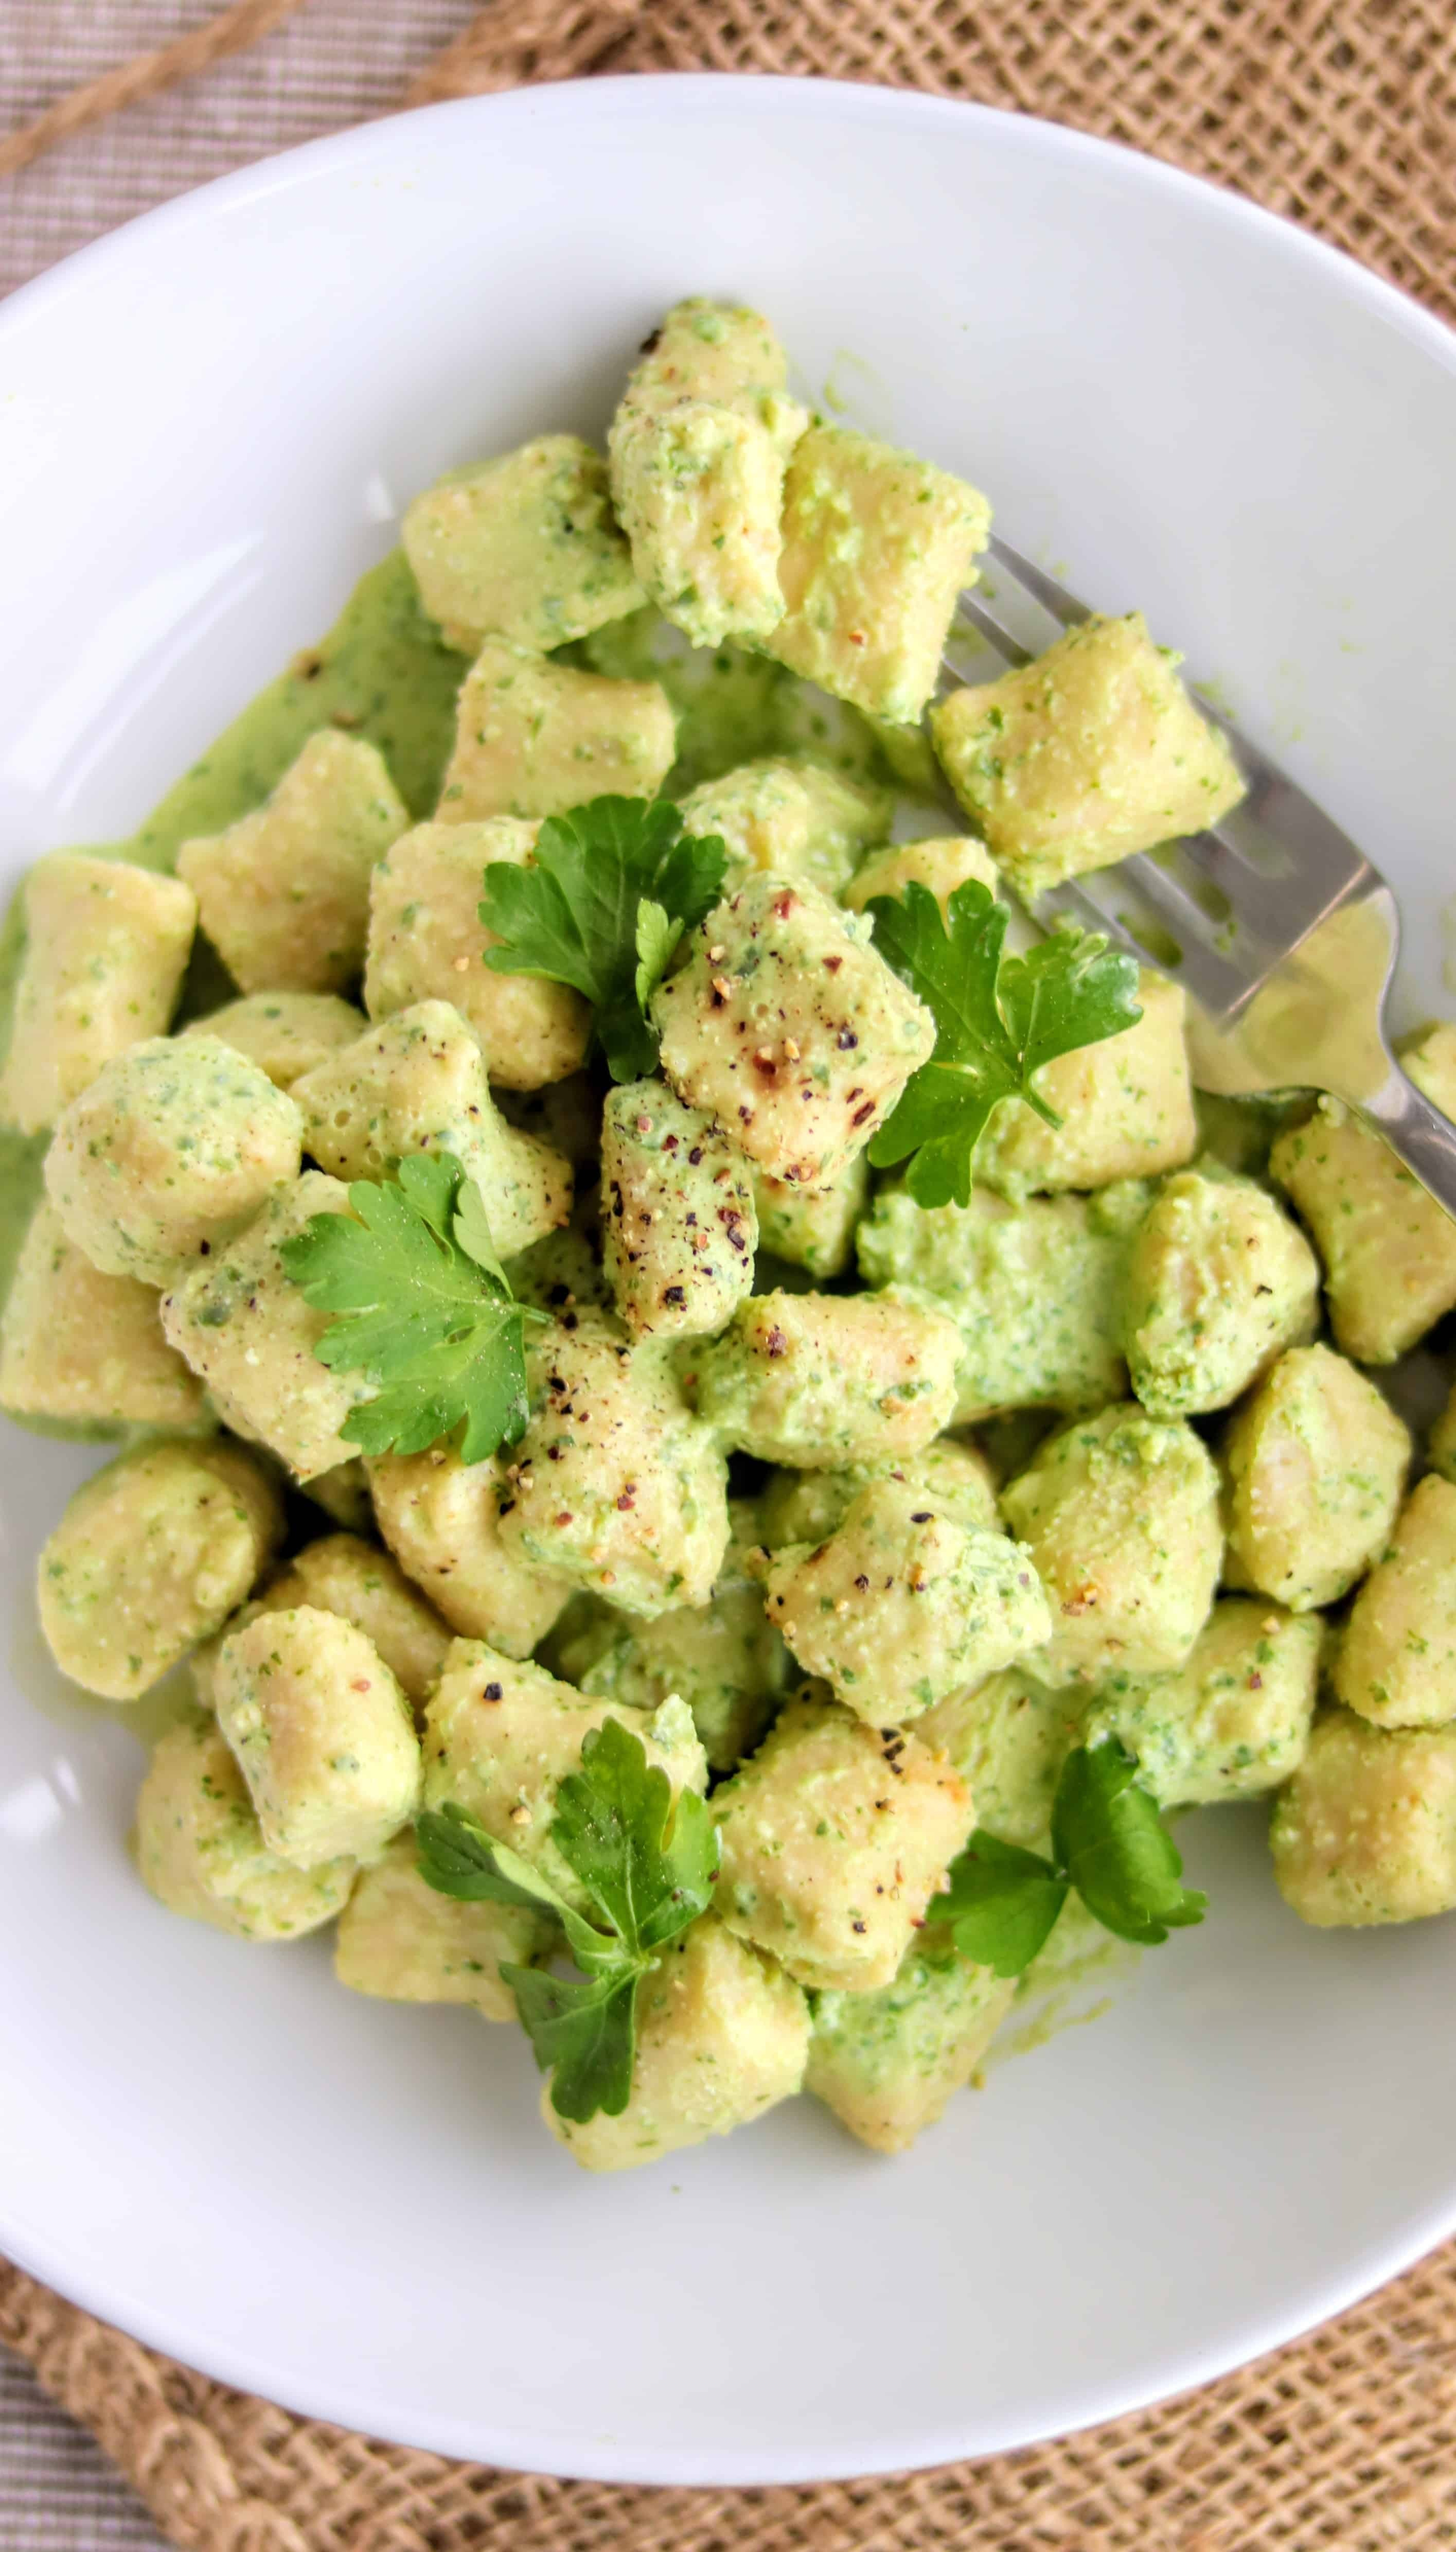 Slimming World Syn Free Gnocchi (With 1.5 Syn Pesto)